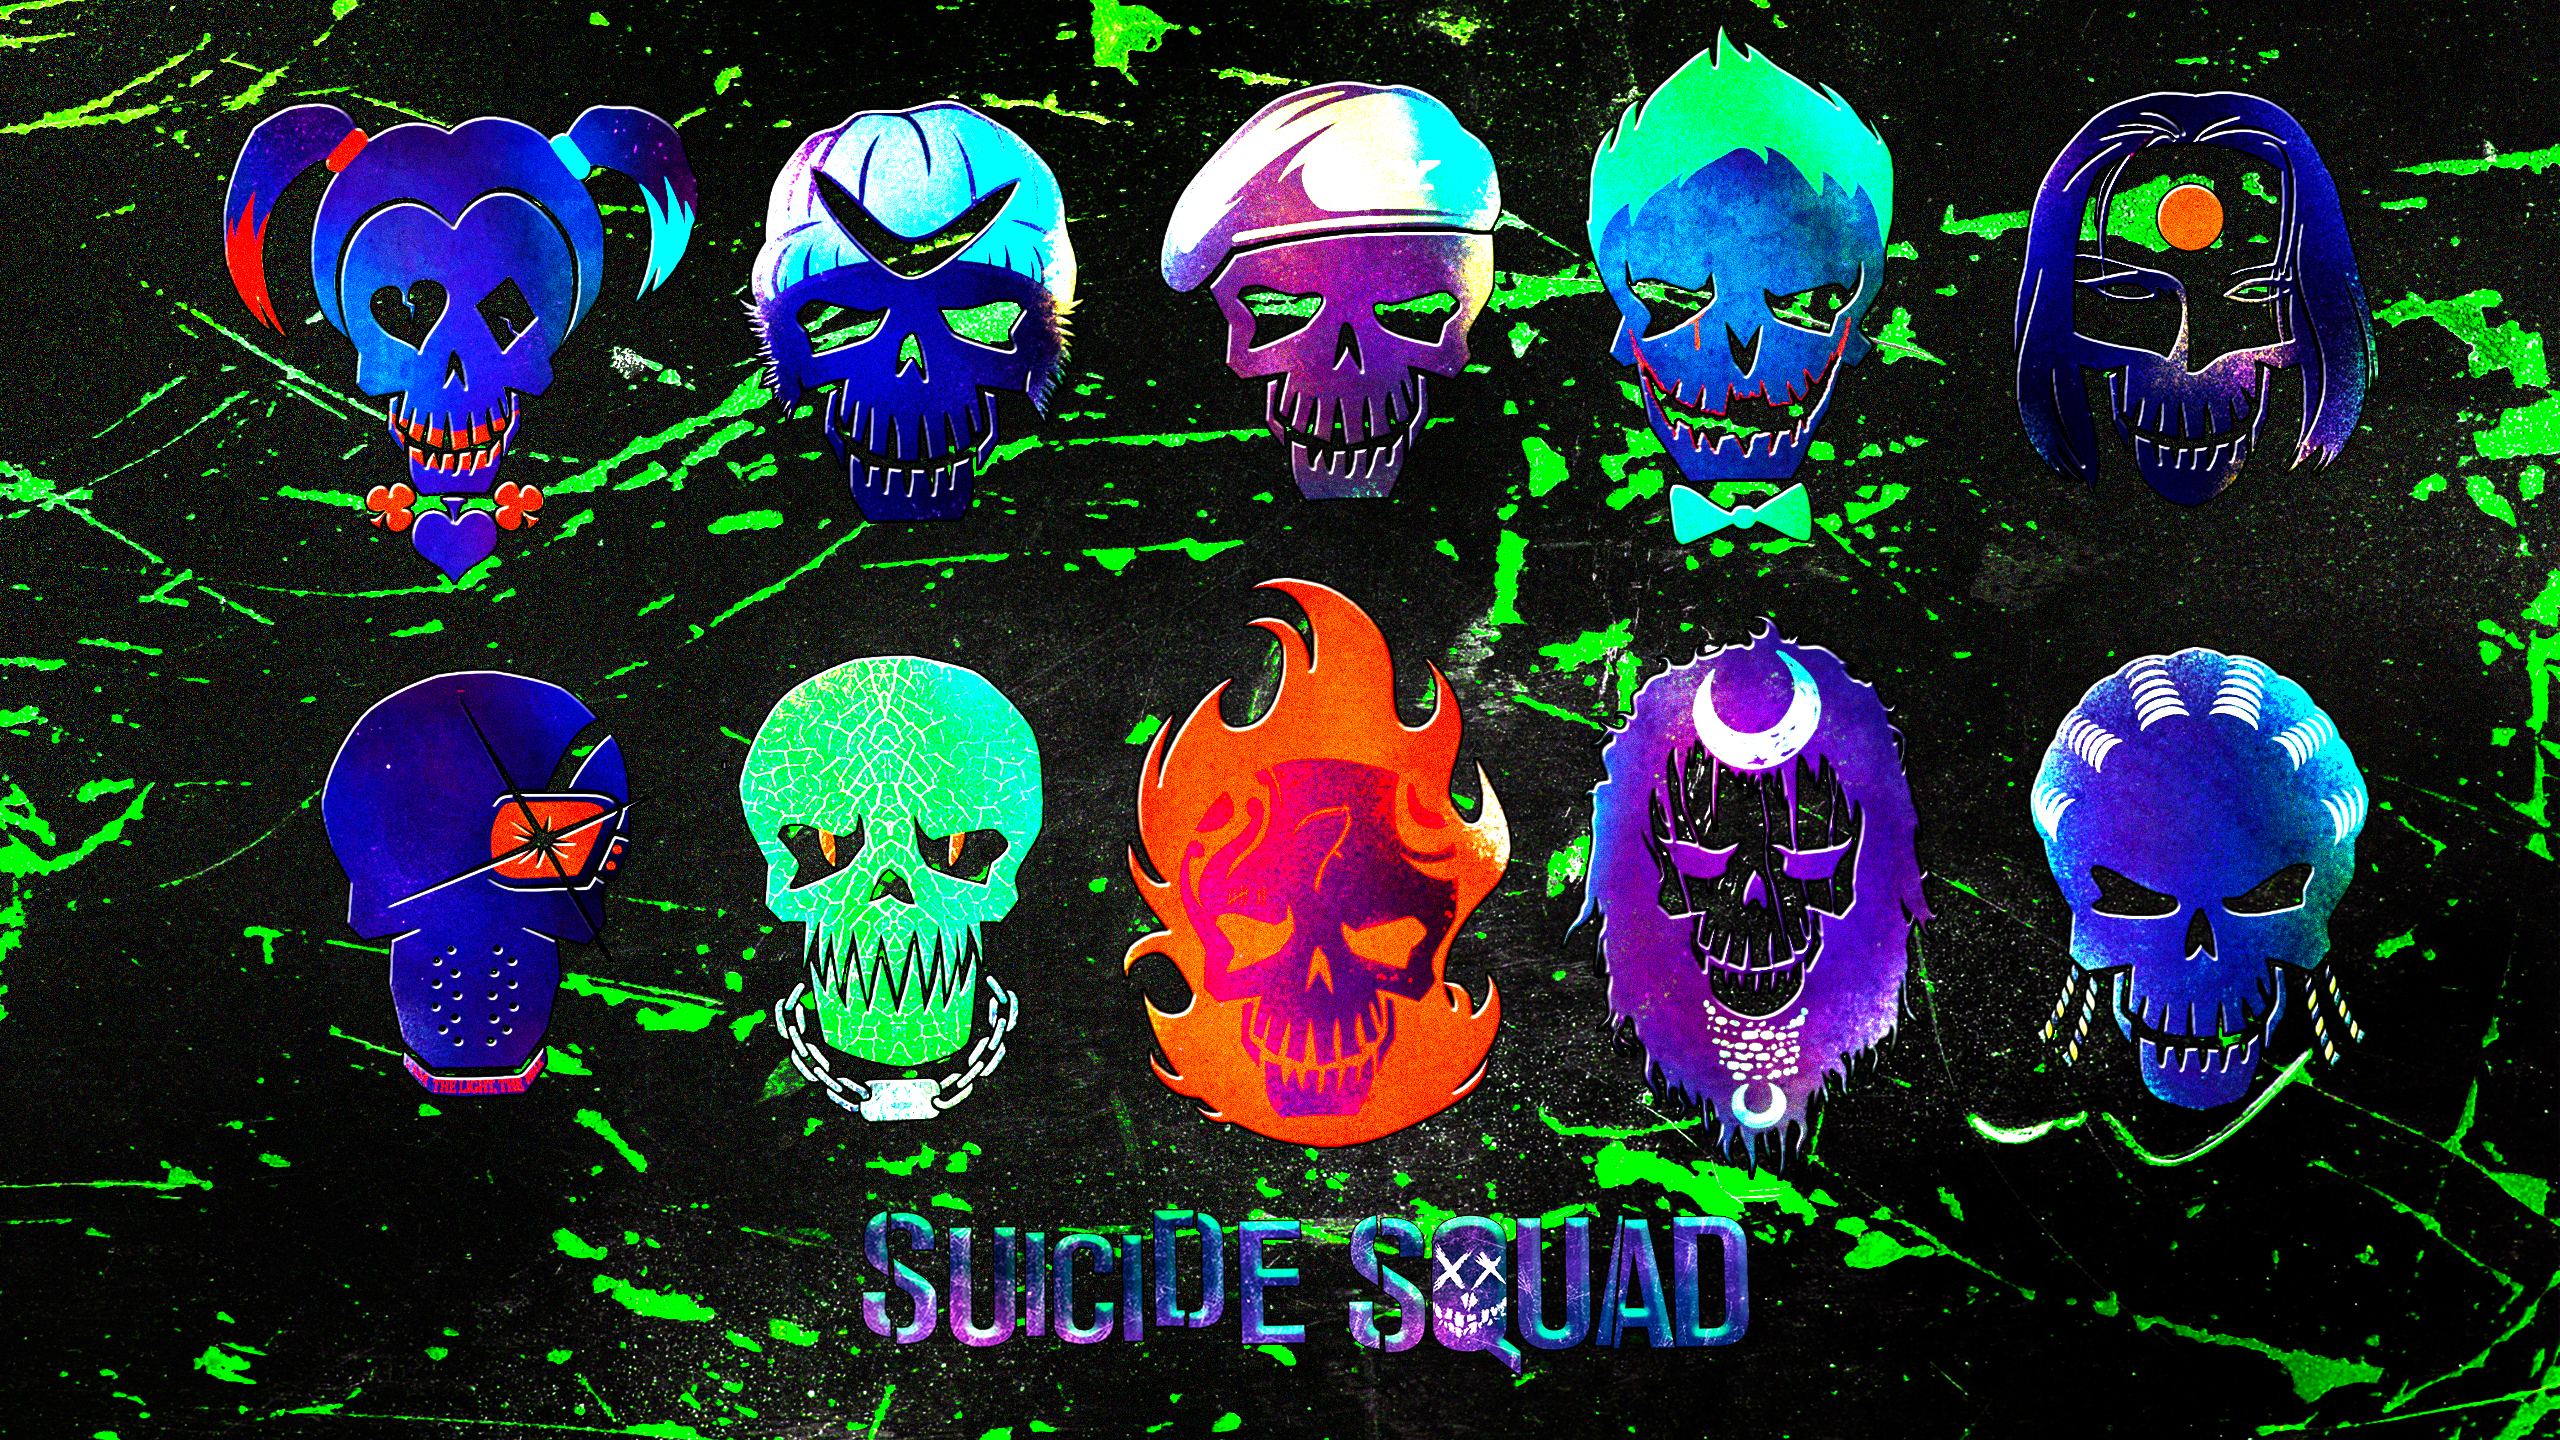 suicide squad wide wallpapers - photo #26